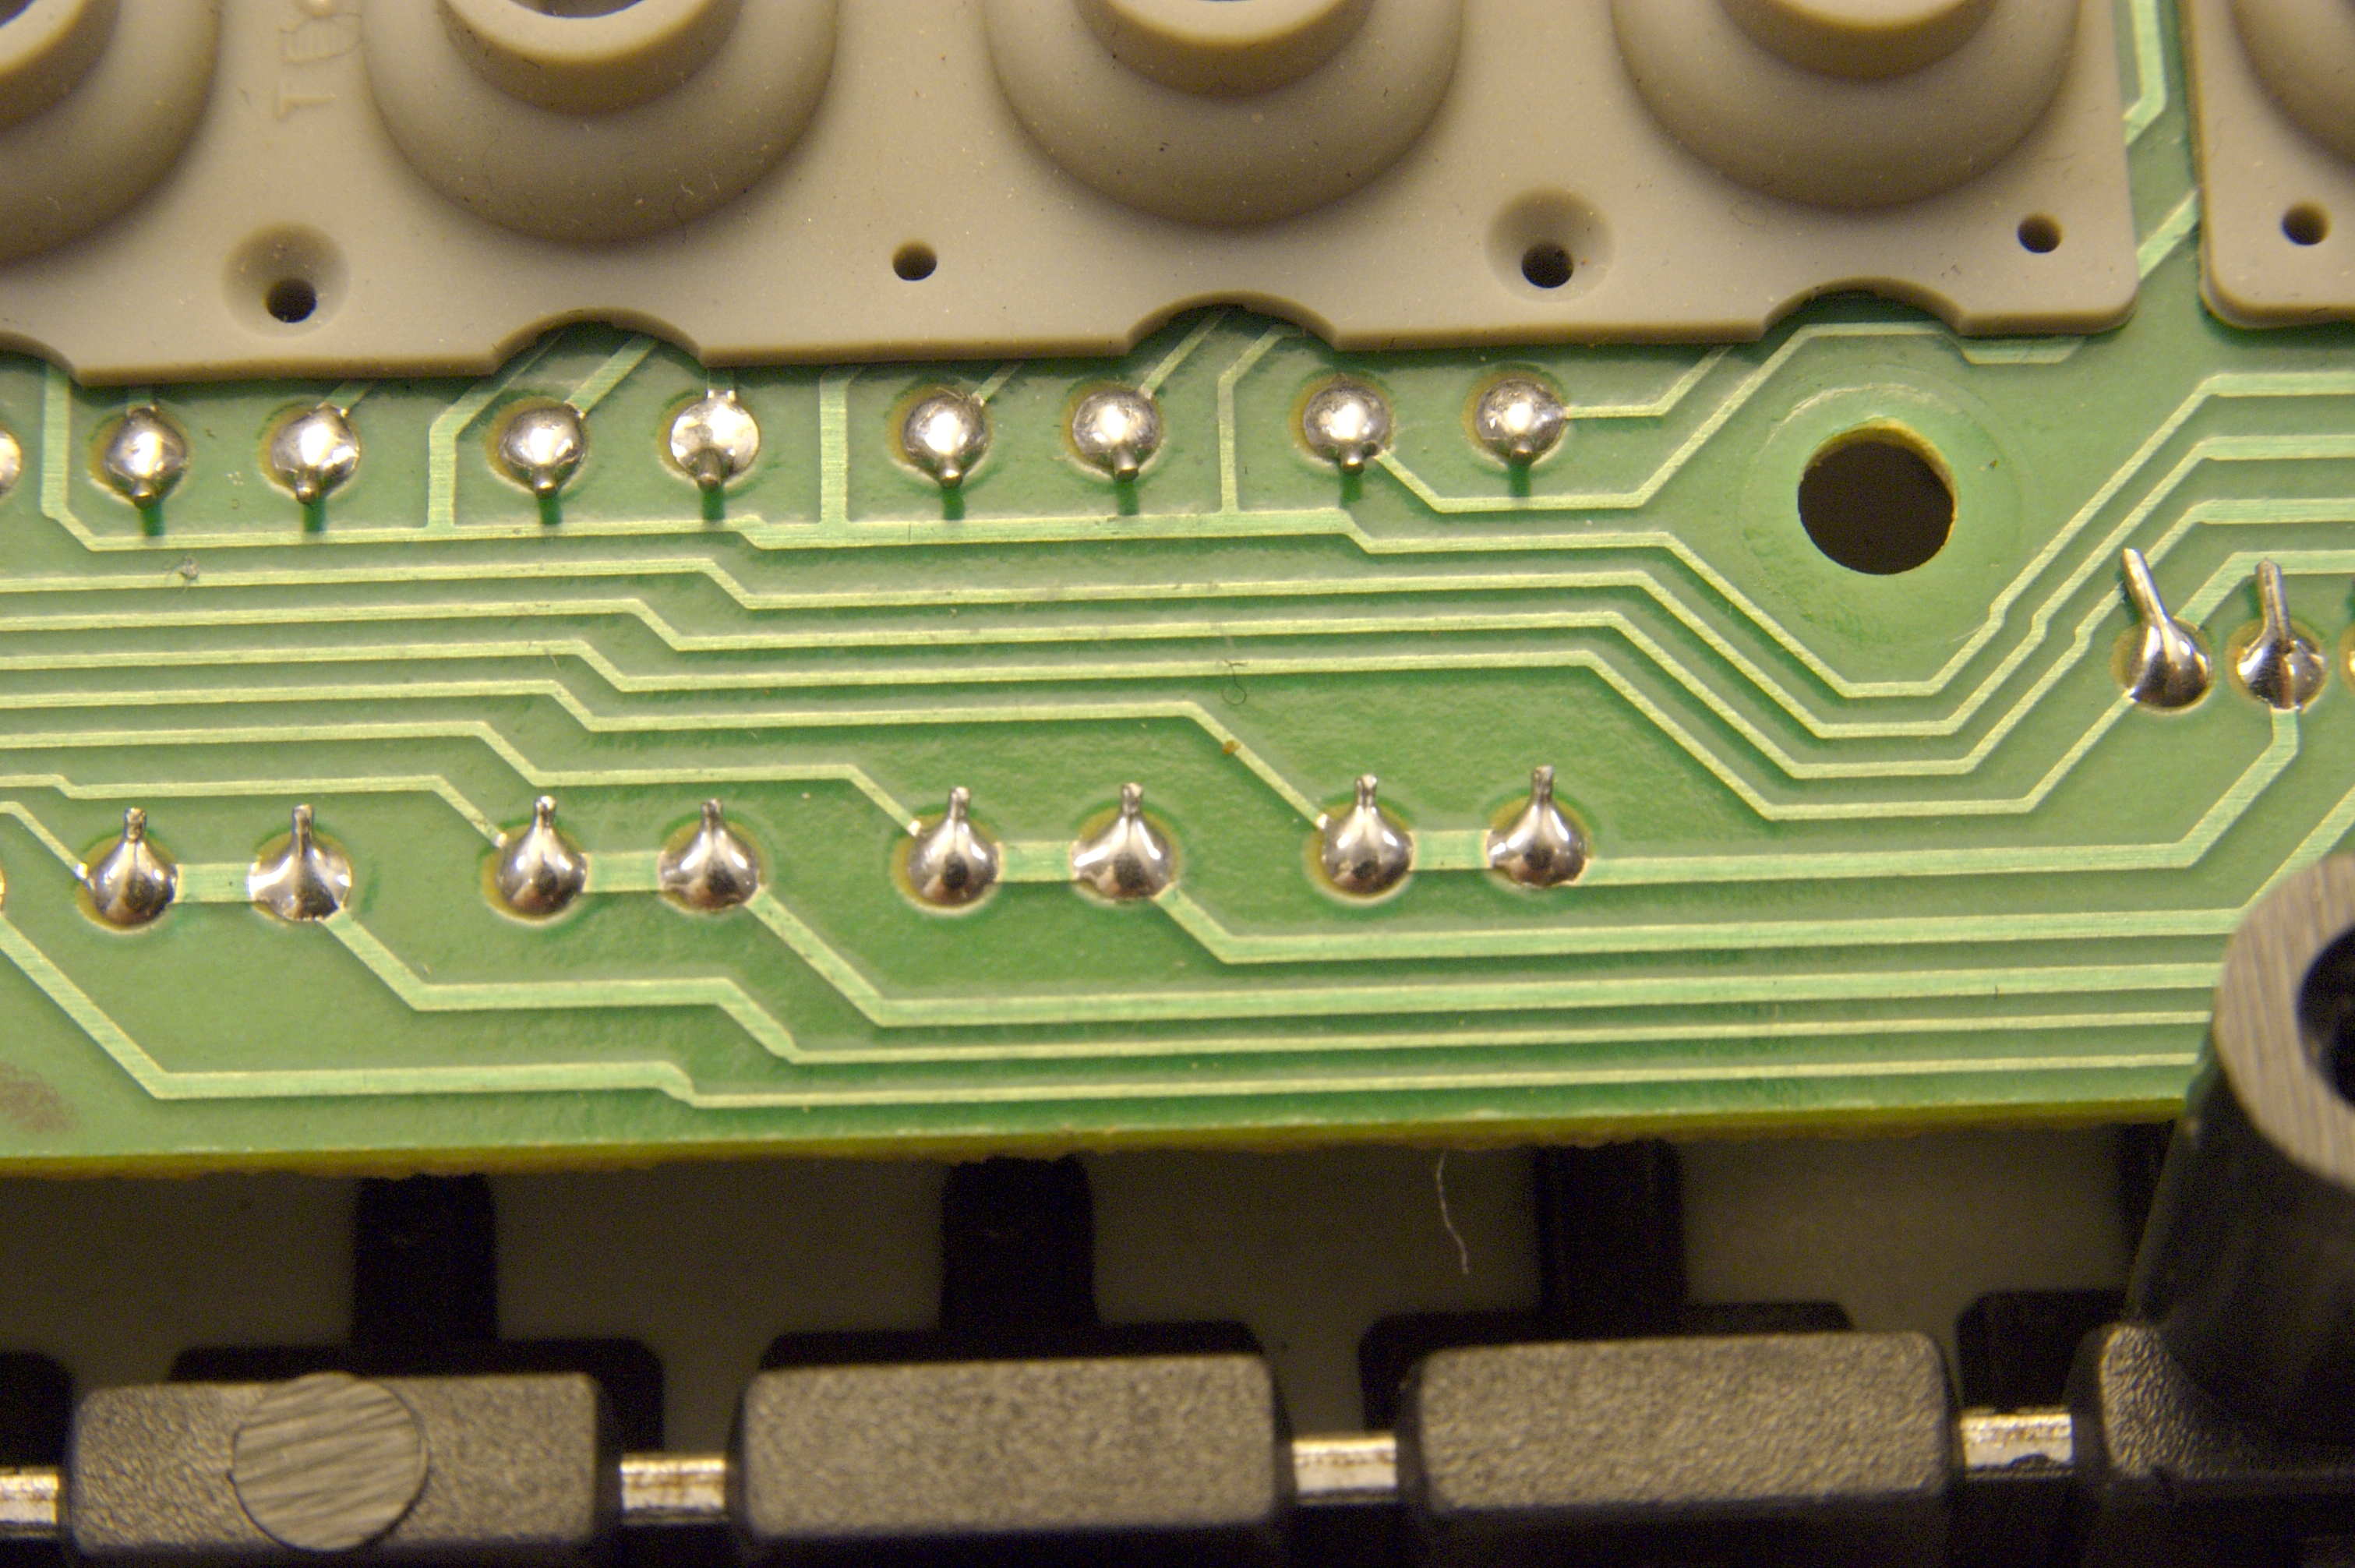 DSC_9345.jpg - There are diodes on the back of the circuit board. Here are the solder points on the top of the board.